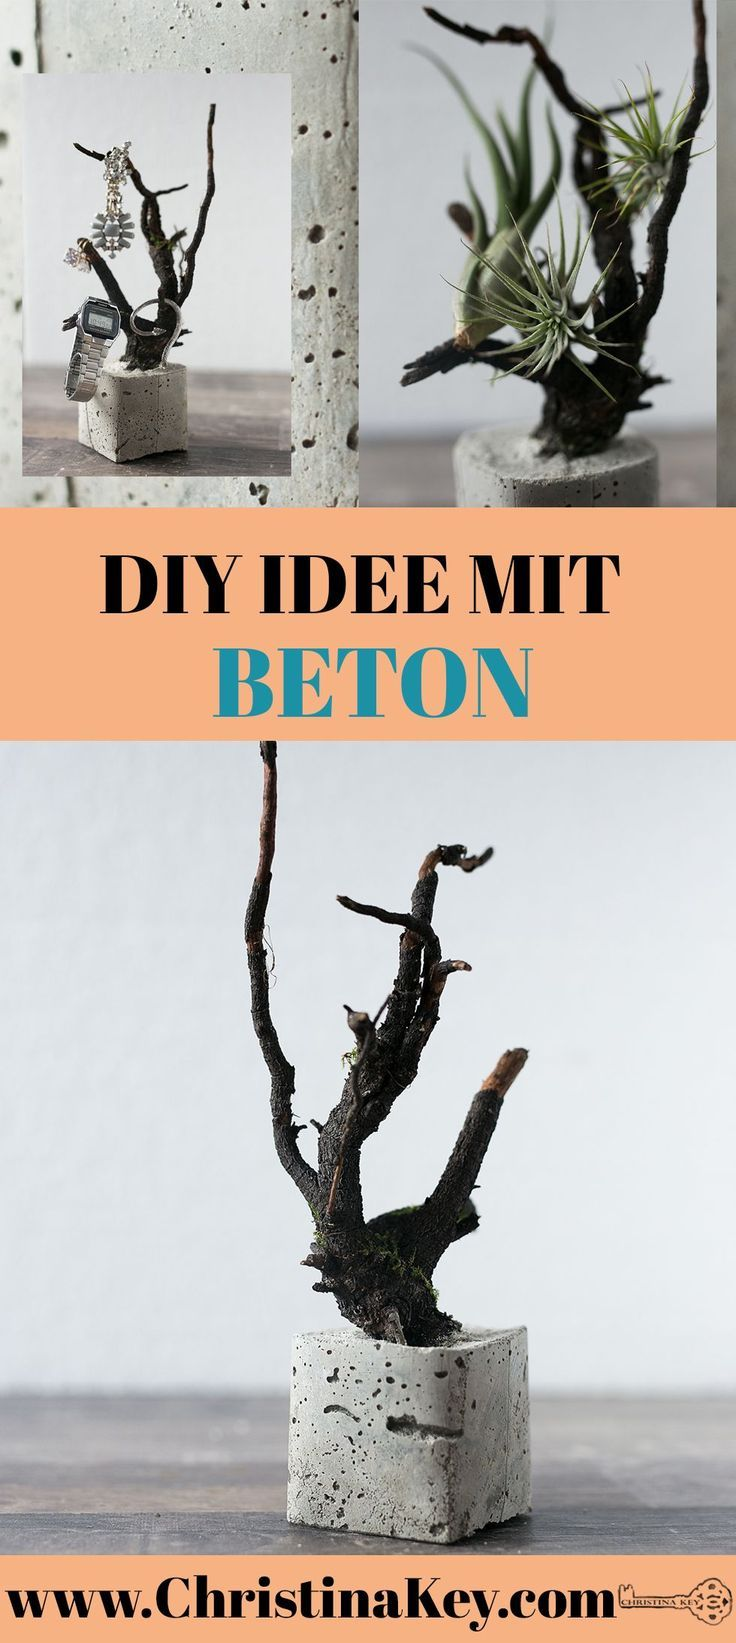 Photo of Beton Baum DIY Projekt – Kreative Fotografie Tipps und Foto Hacks